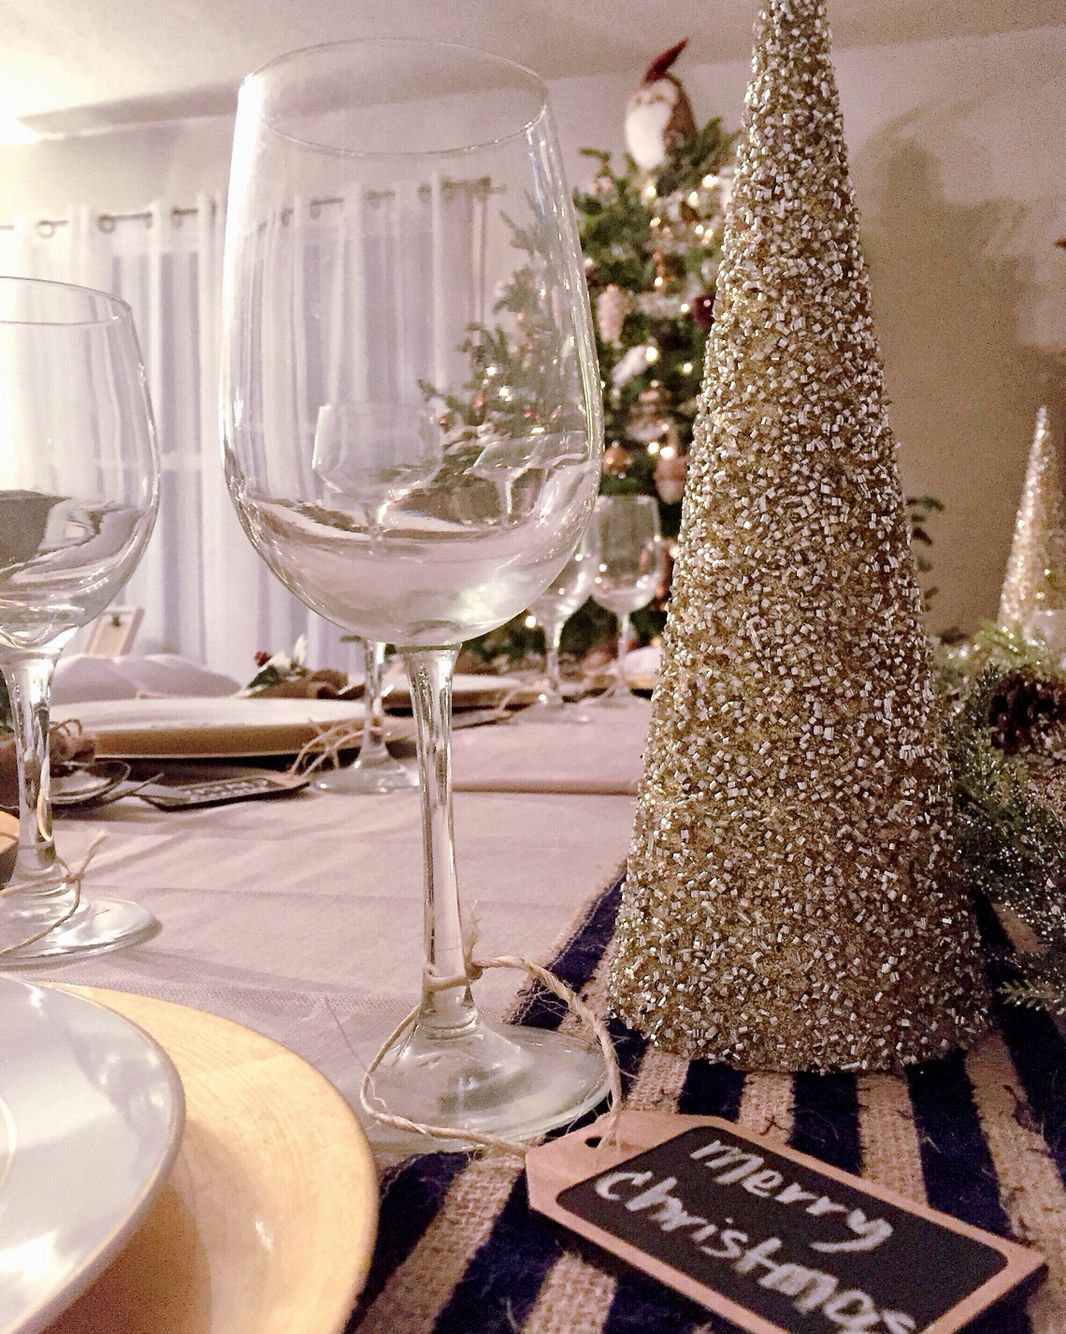 Our dinner table for Christmas. Besides being pretty, it